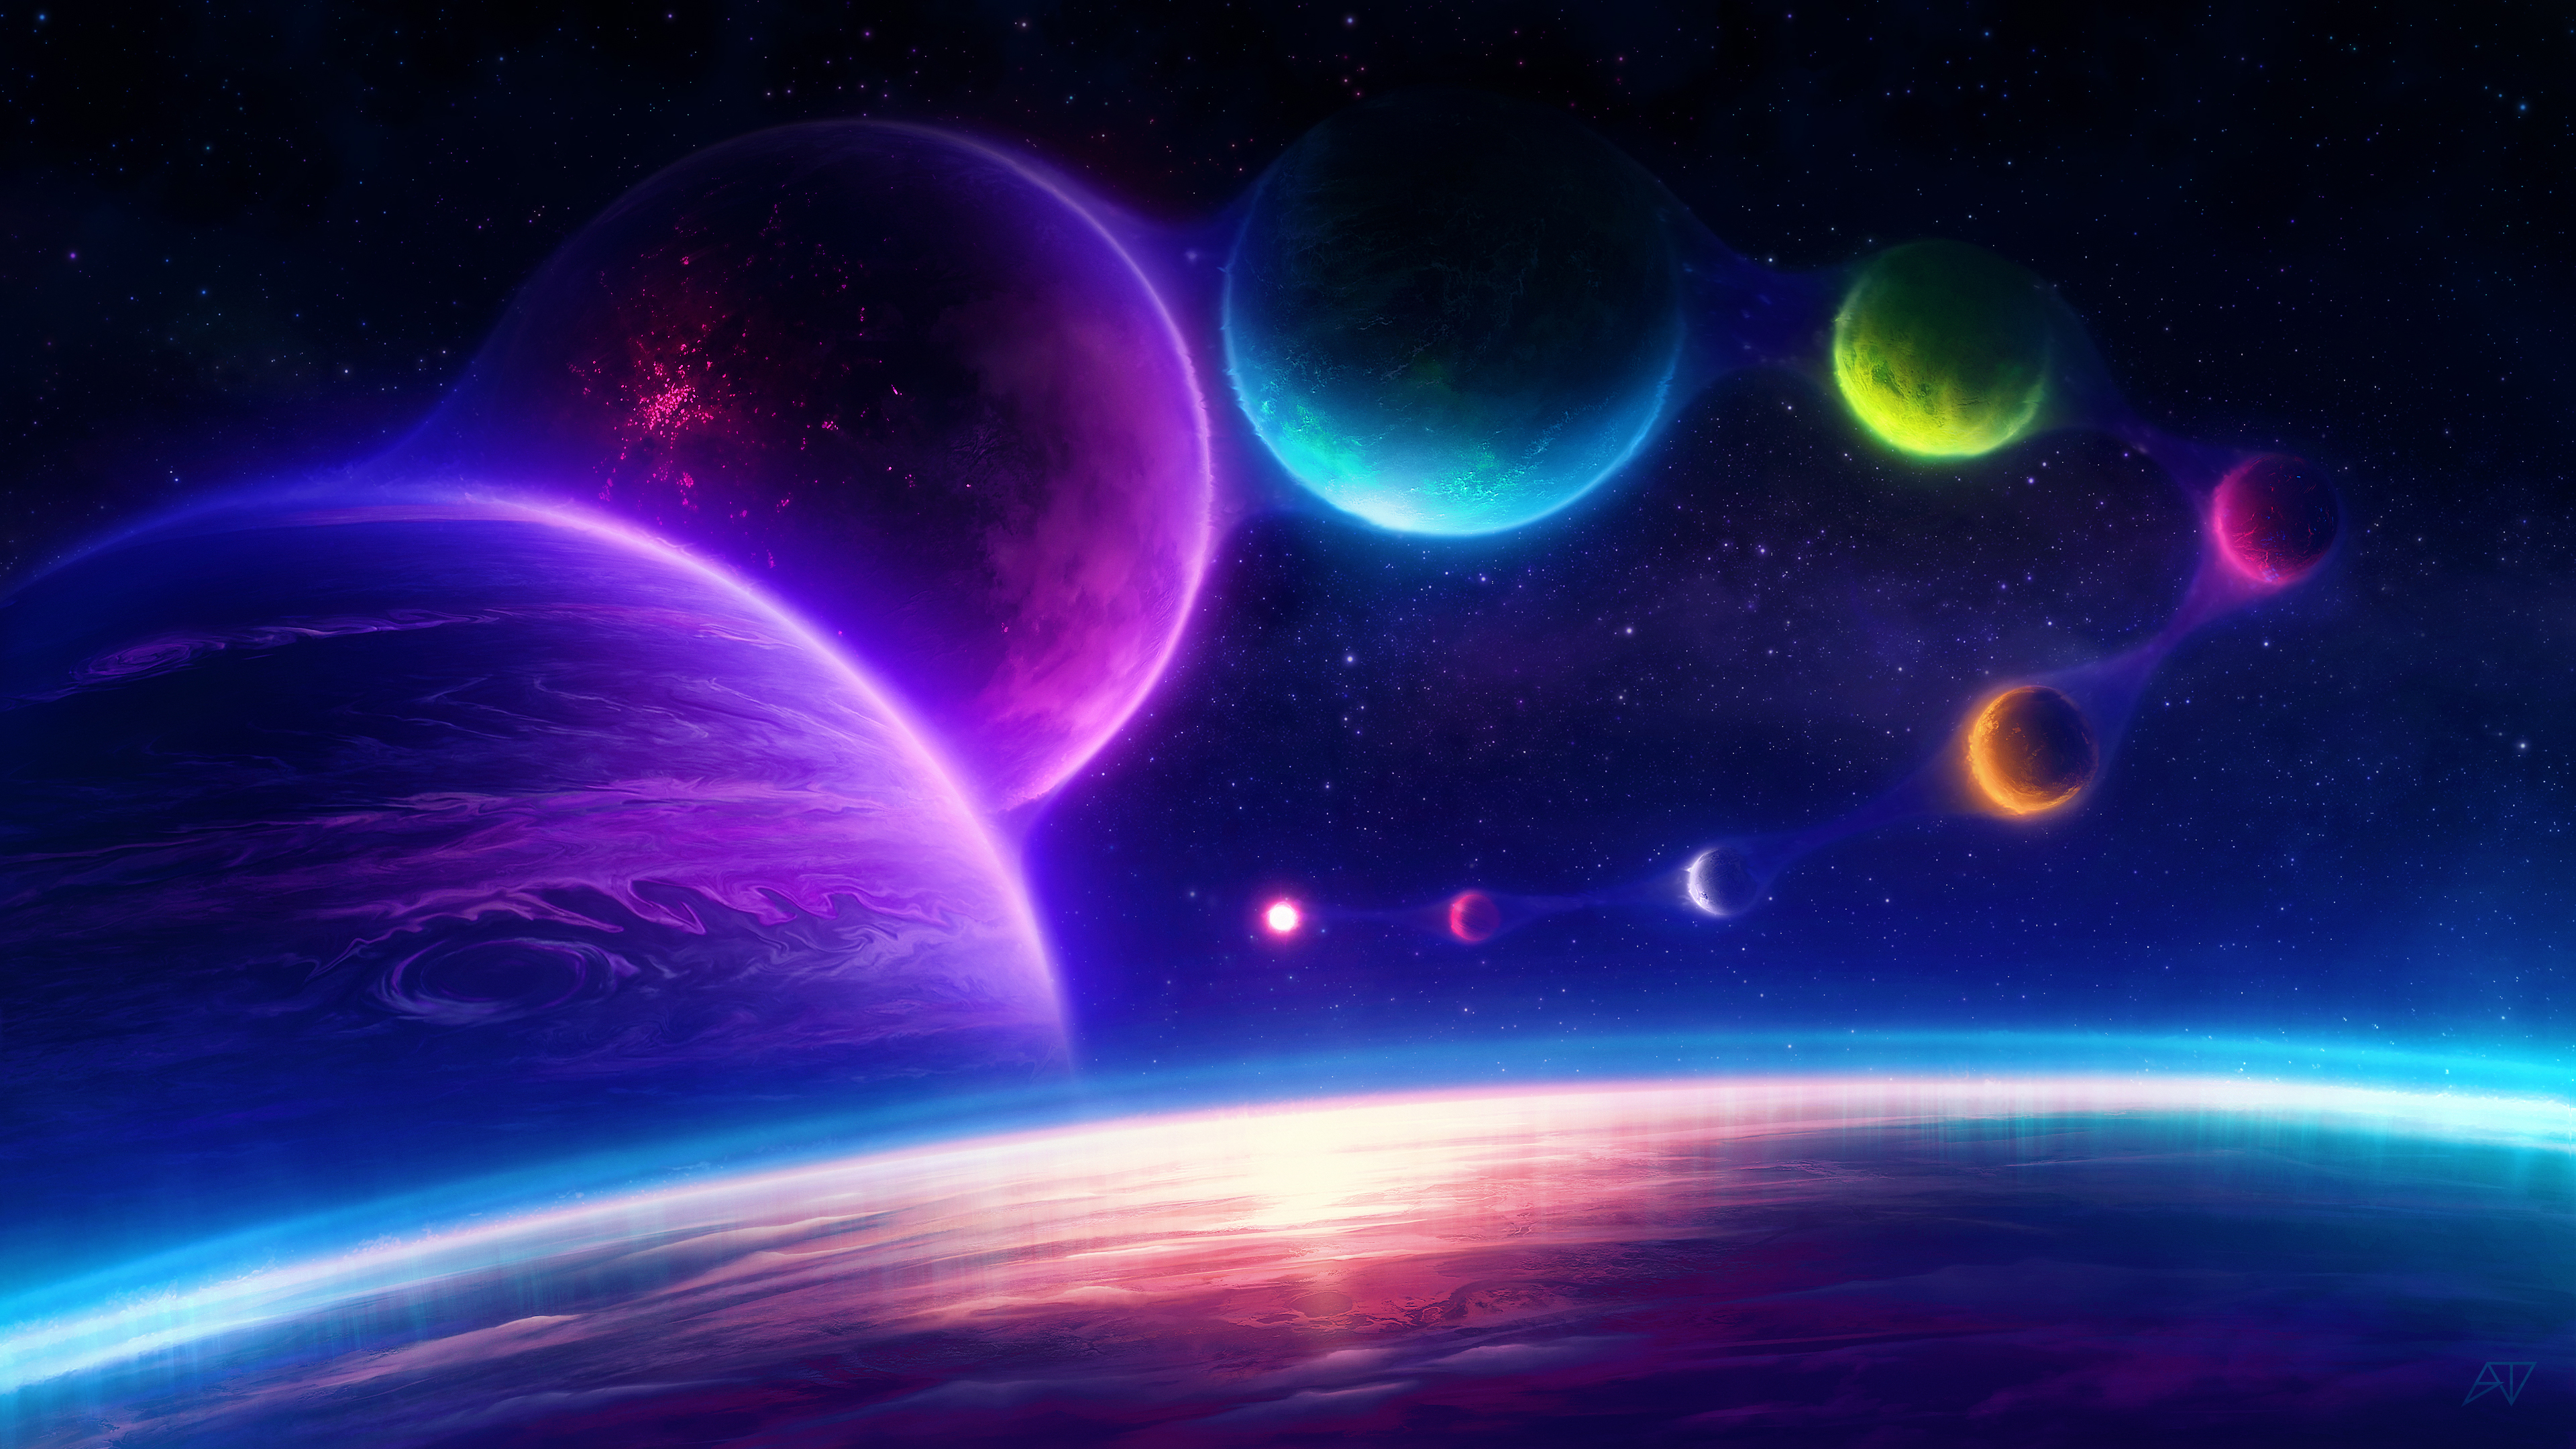 colorful planets chill scifi pink 1574943203 - Colorful Planets Chill Scifi Pink -